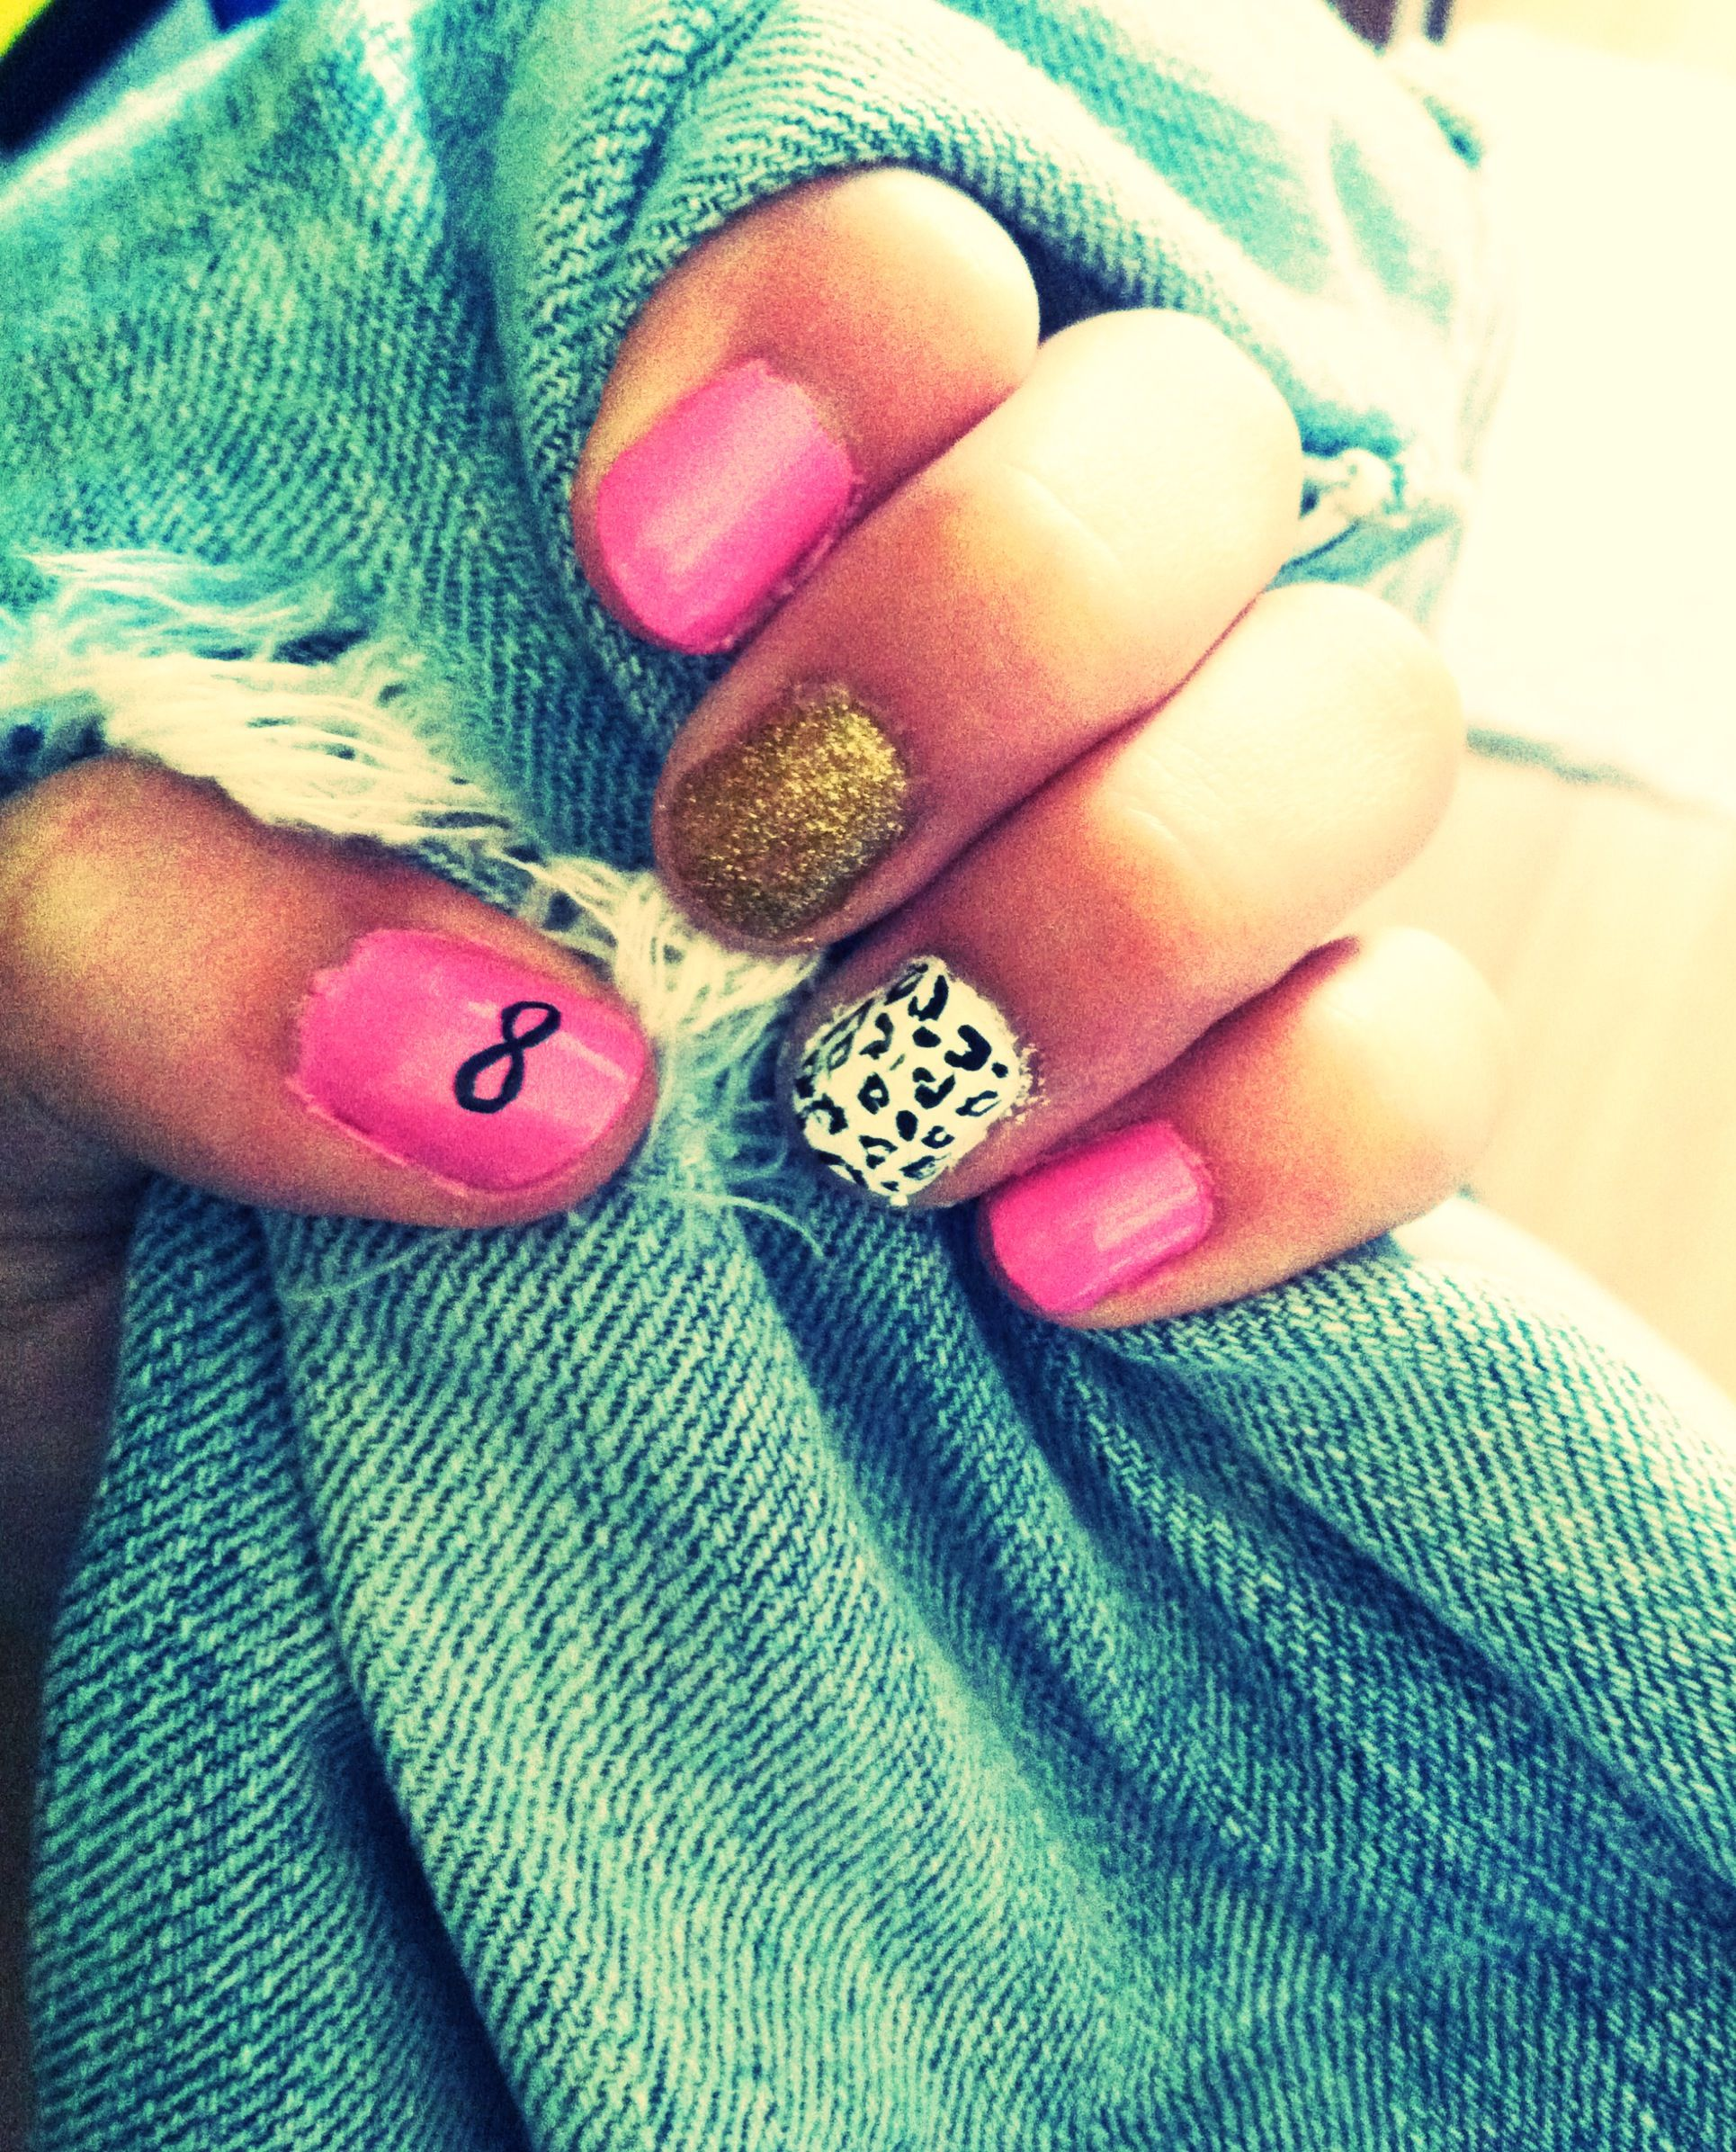 Infinity nails with cheetah and gold | nails | Pinterest ...